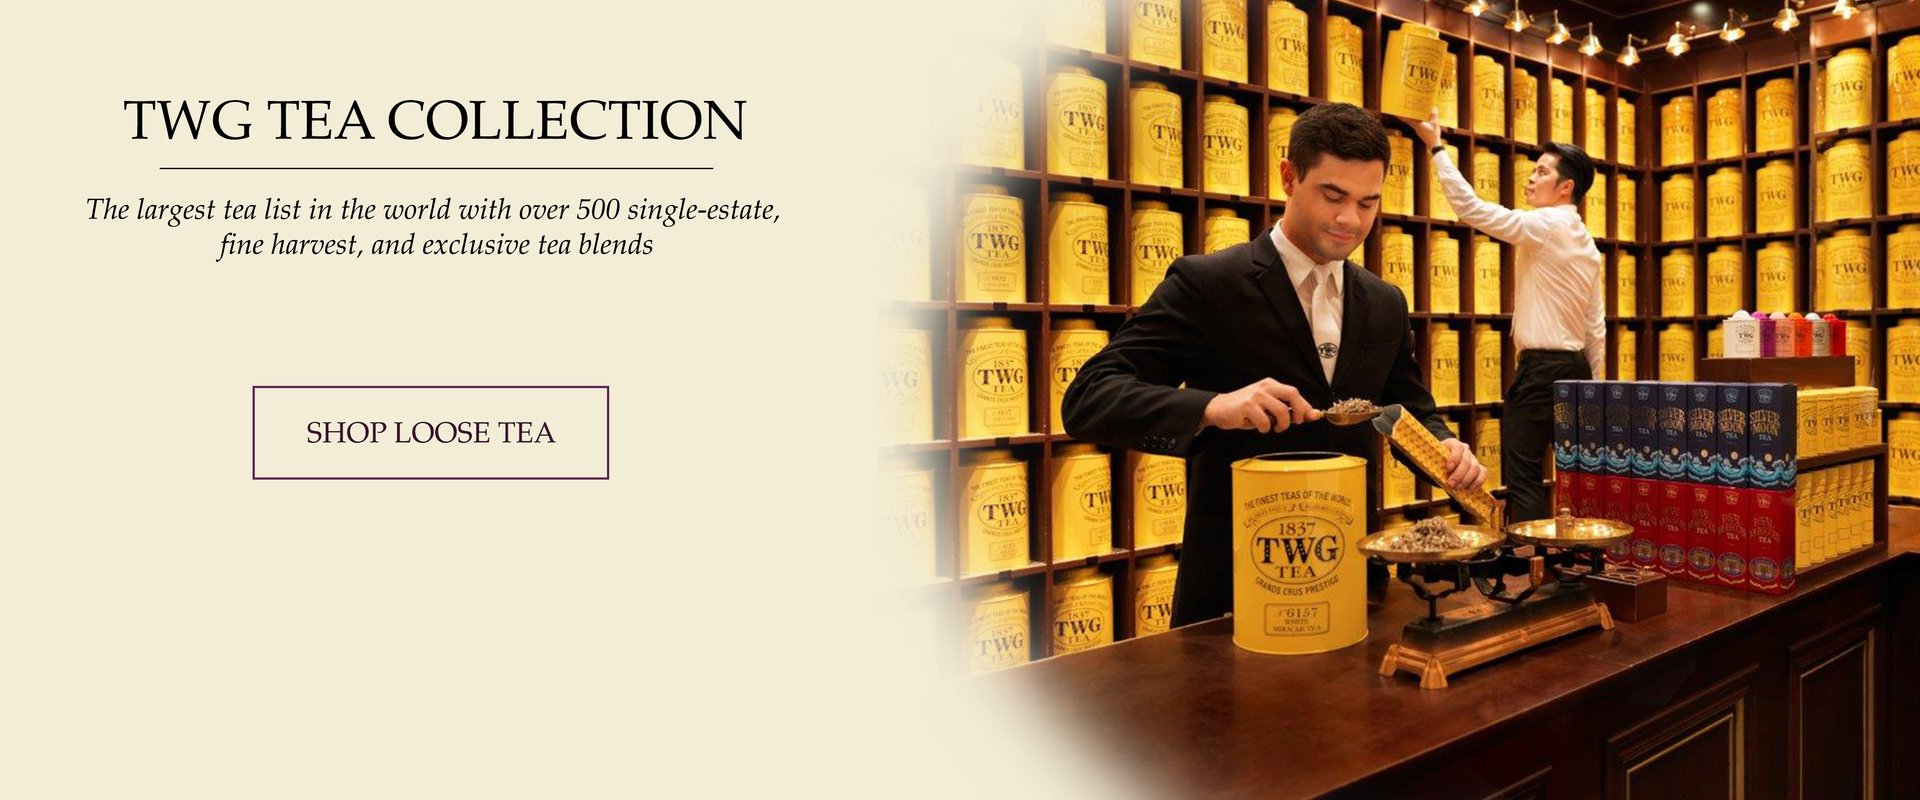 TWG Tea Loose Tea Collection, The largest in the world